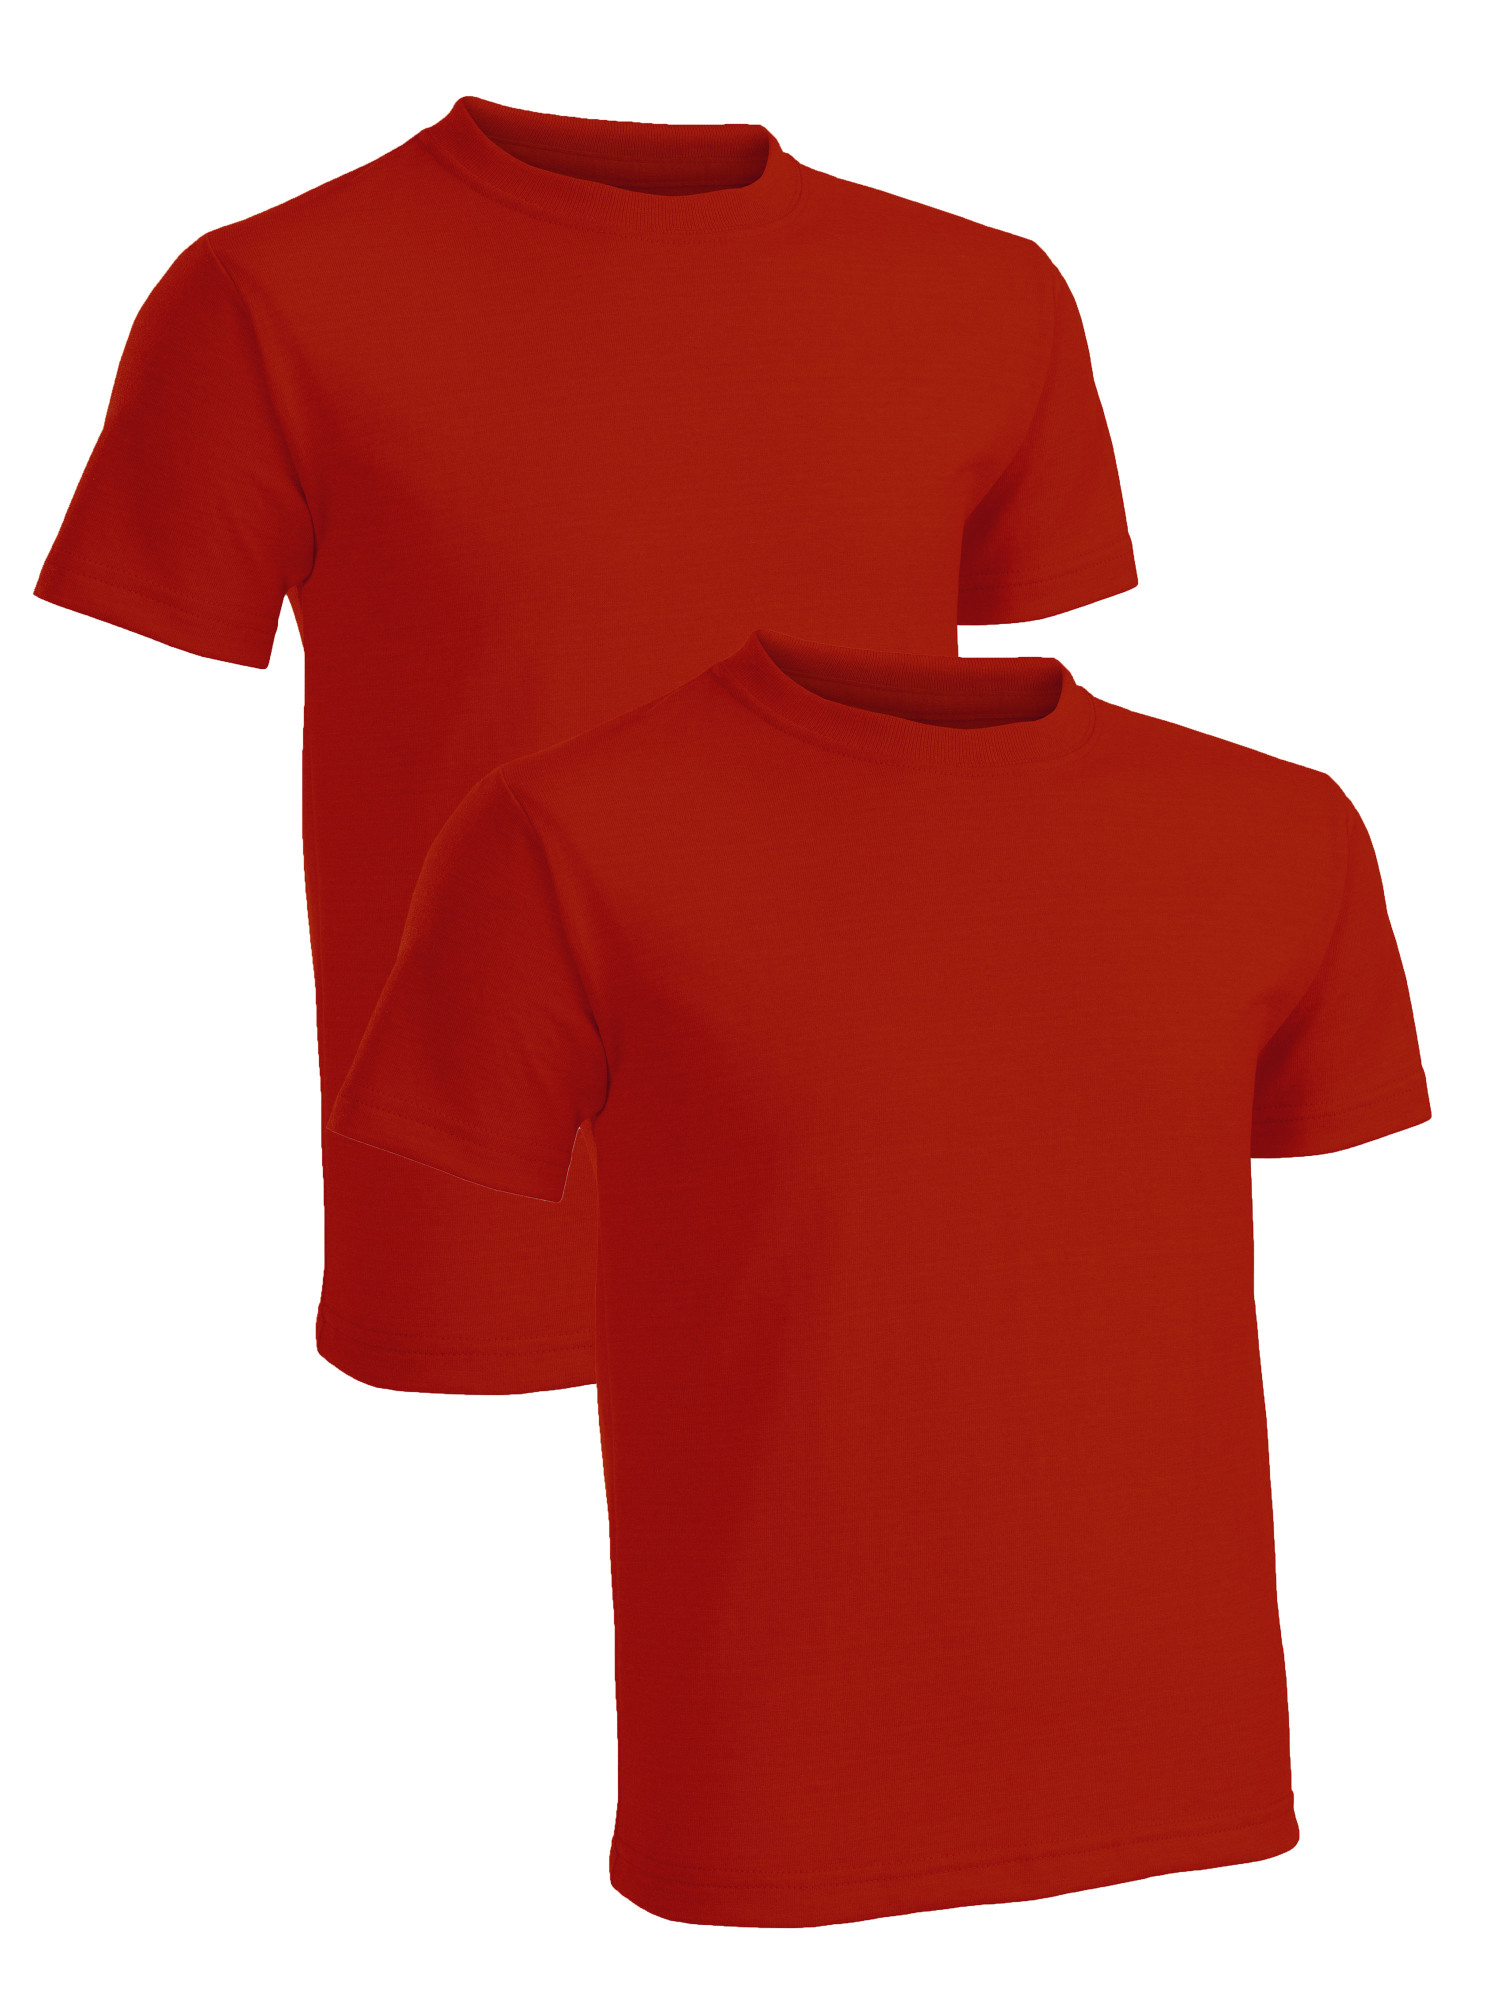 Fruit of the Loom Boys' Short Sleeve Crew Neck T-Shirts, 2 Pack